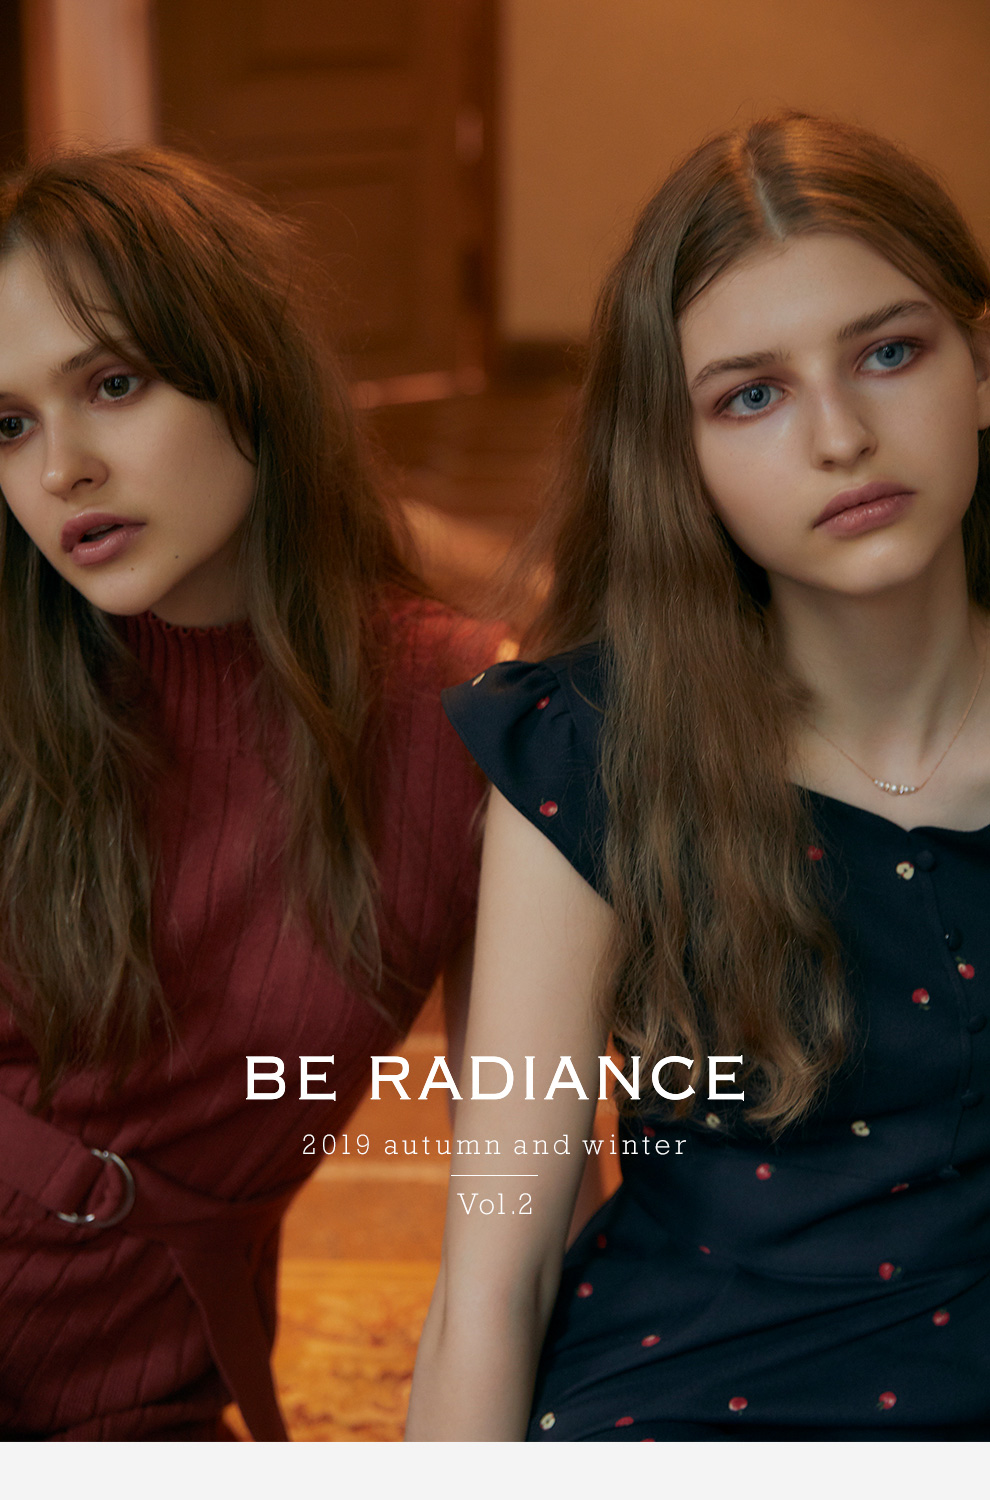 BE RADIANCE 2019 autumn and winter Vol.2